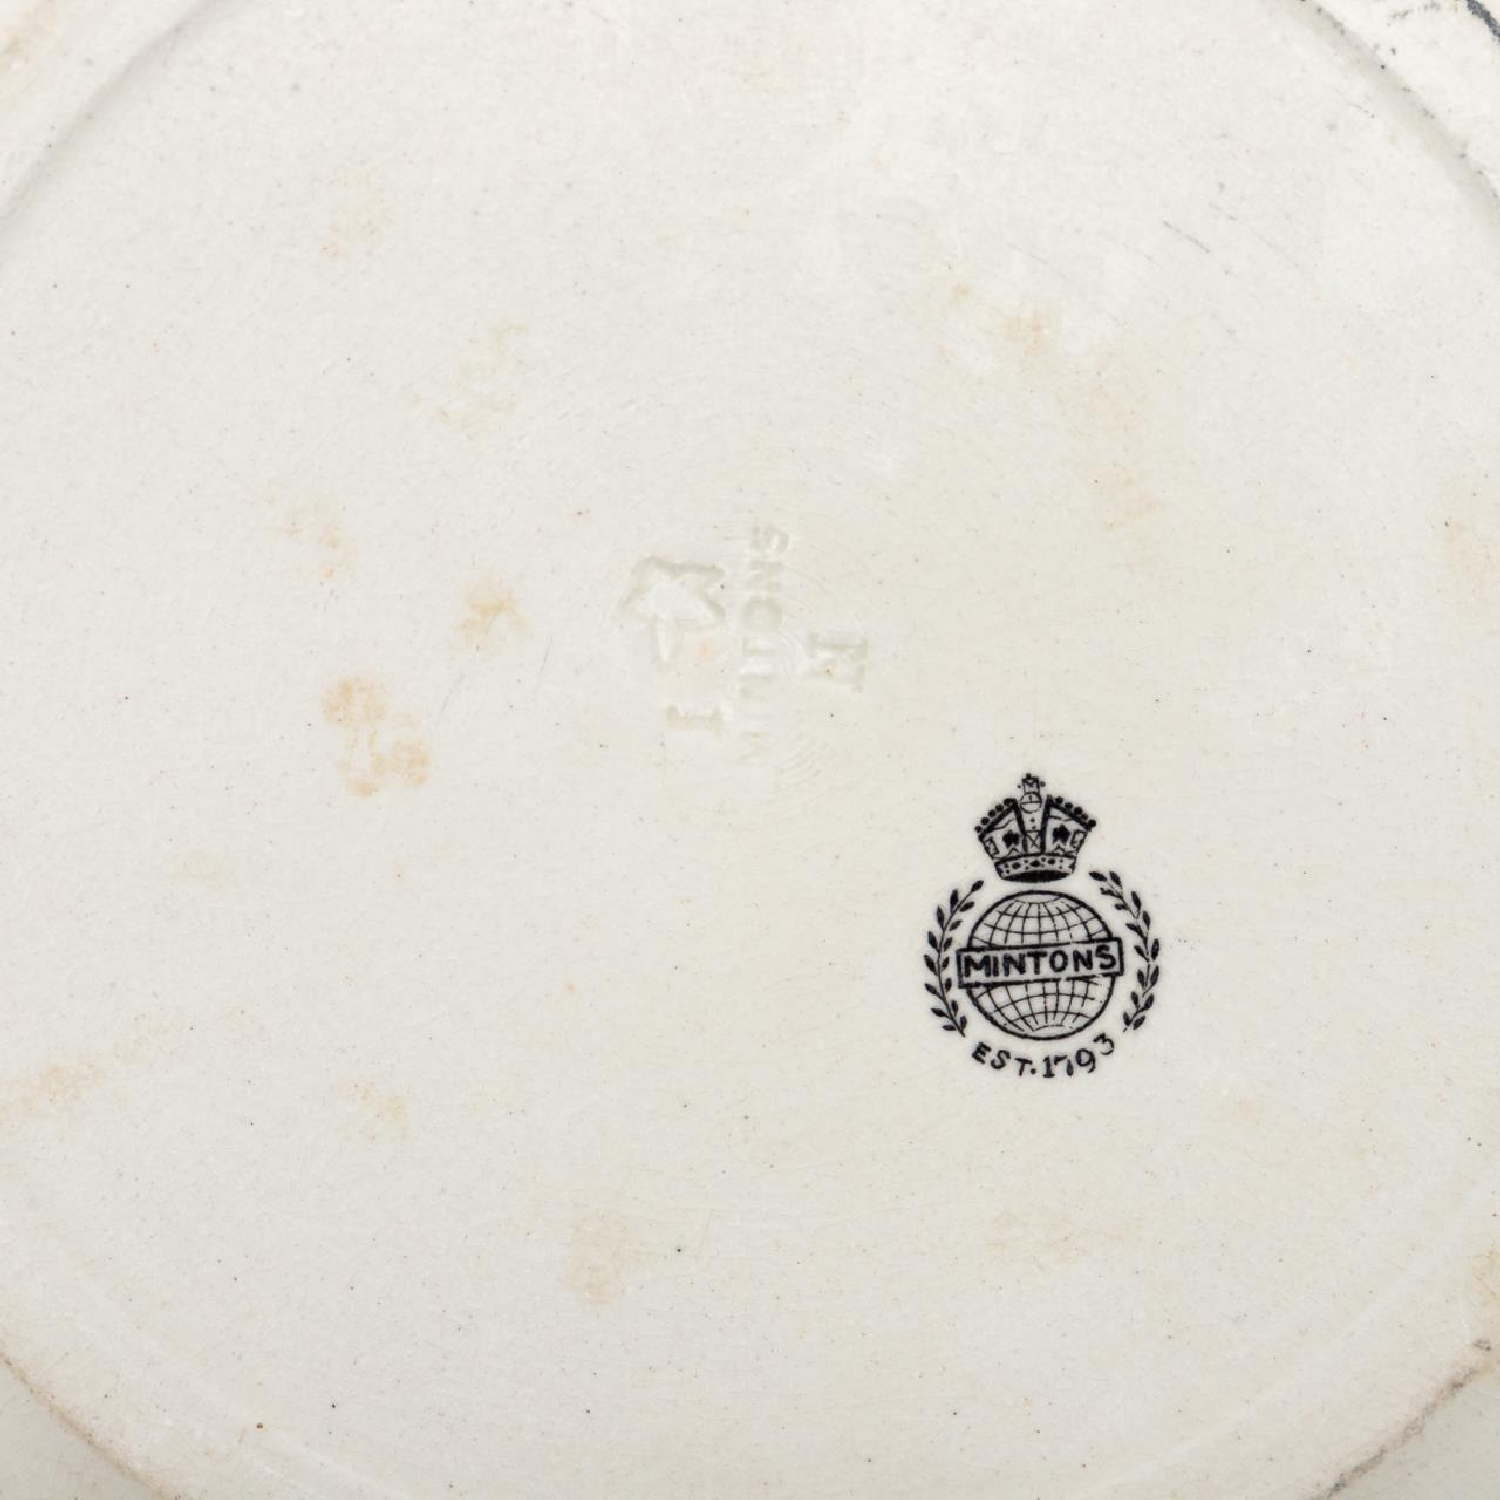 RMS CARPATHIA, SALVAGED THIRD CLASS BOWL WITH LOGO - Image 4 of 5